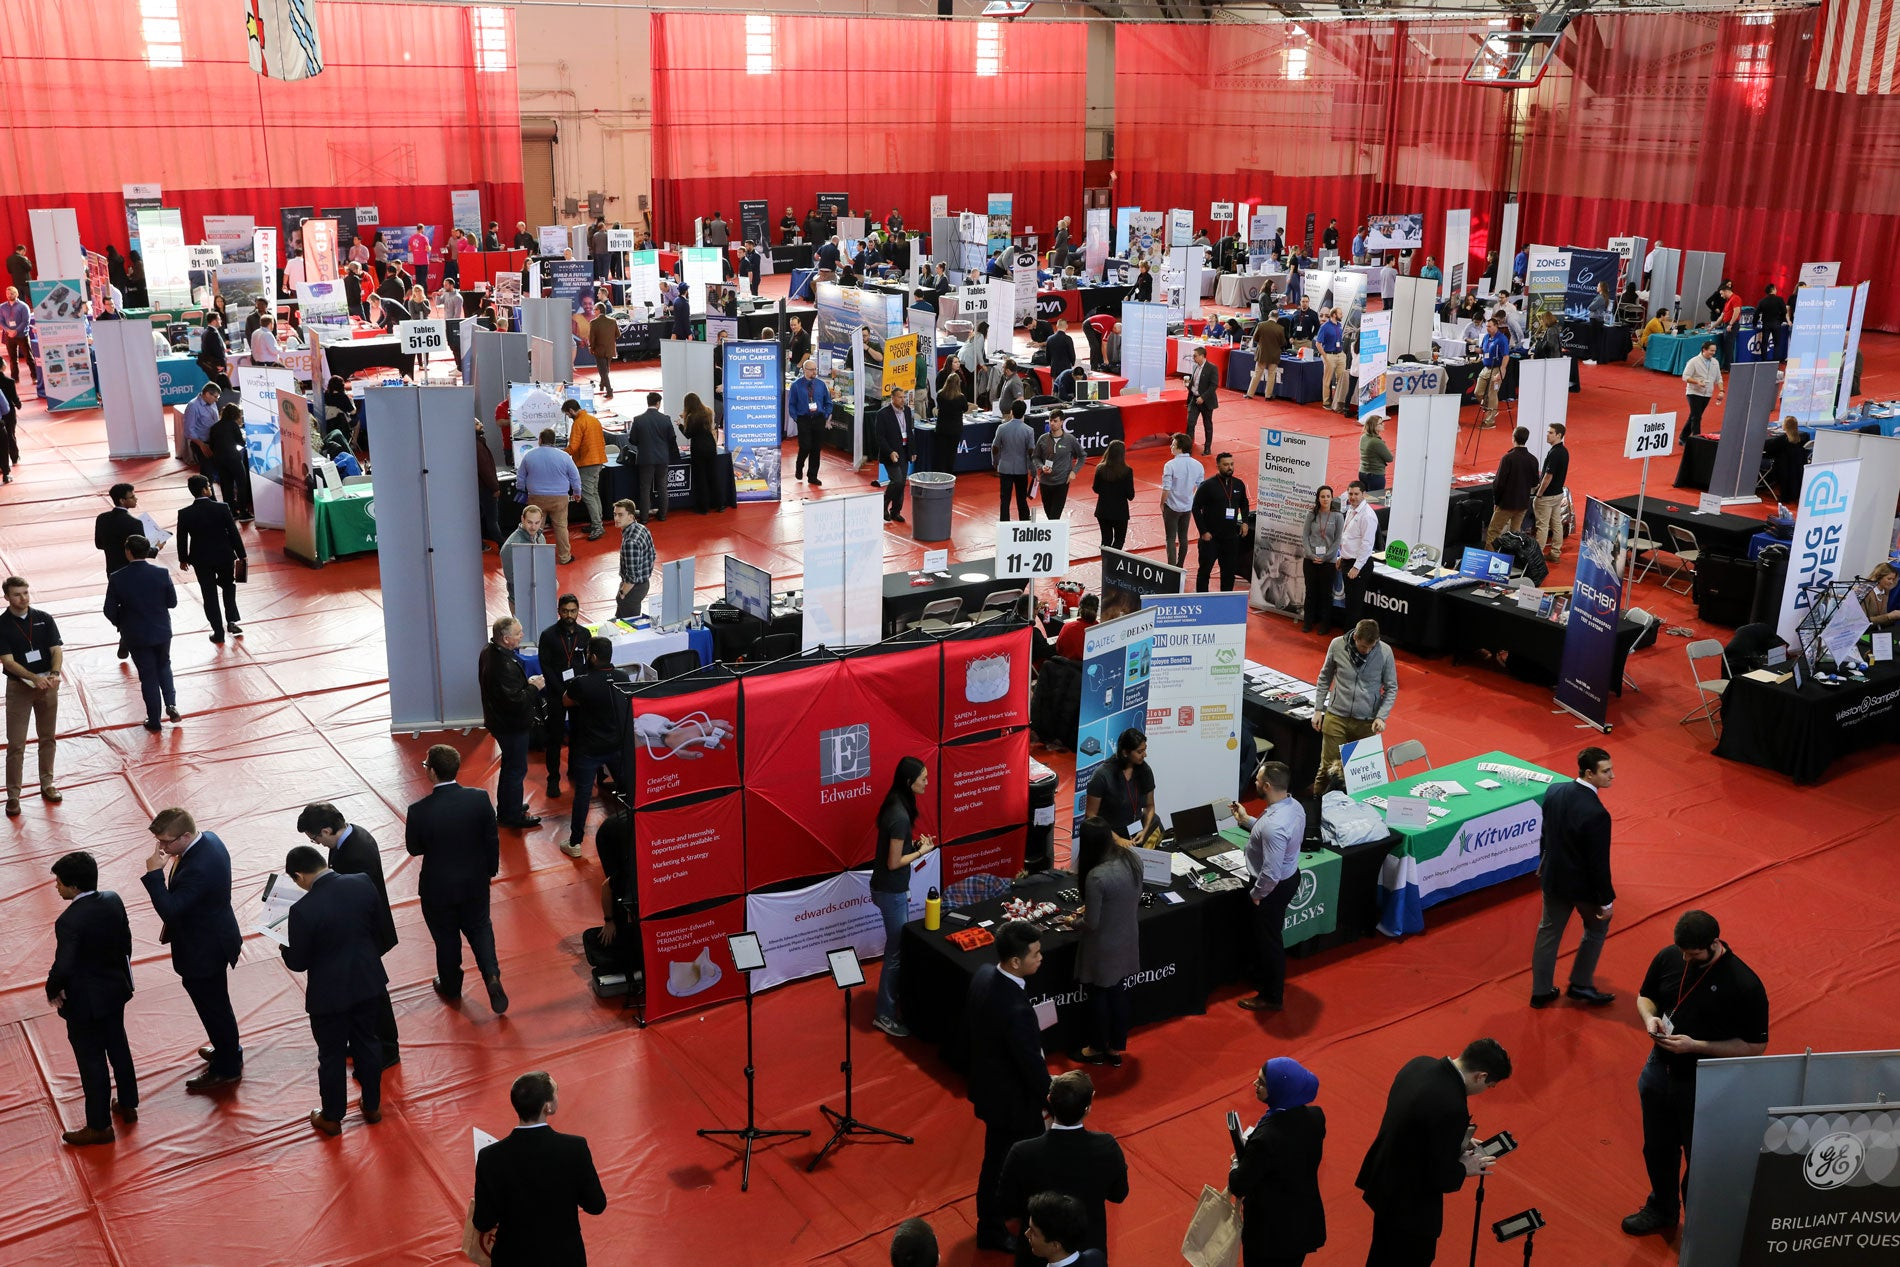 A view of the Career Fair from above showcasing companies booths.